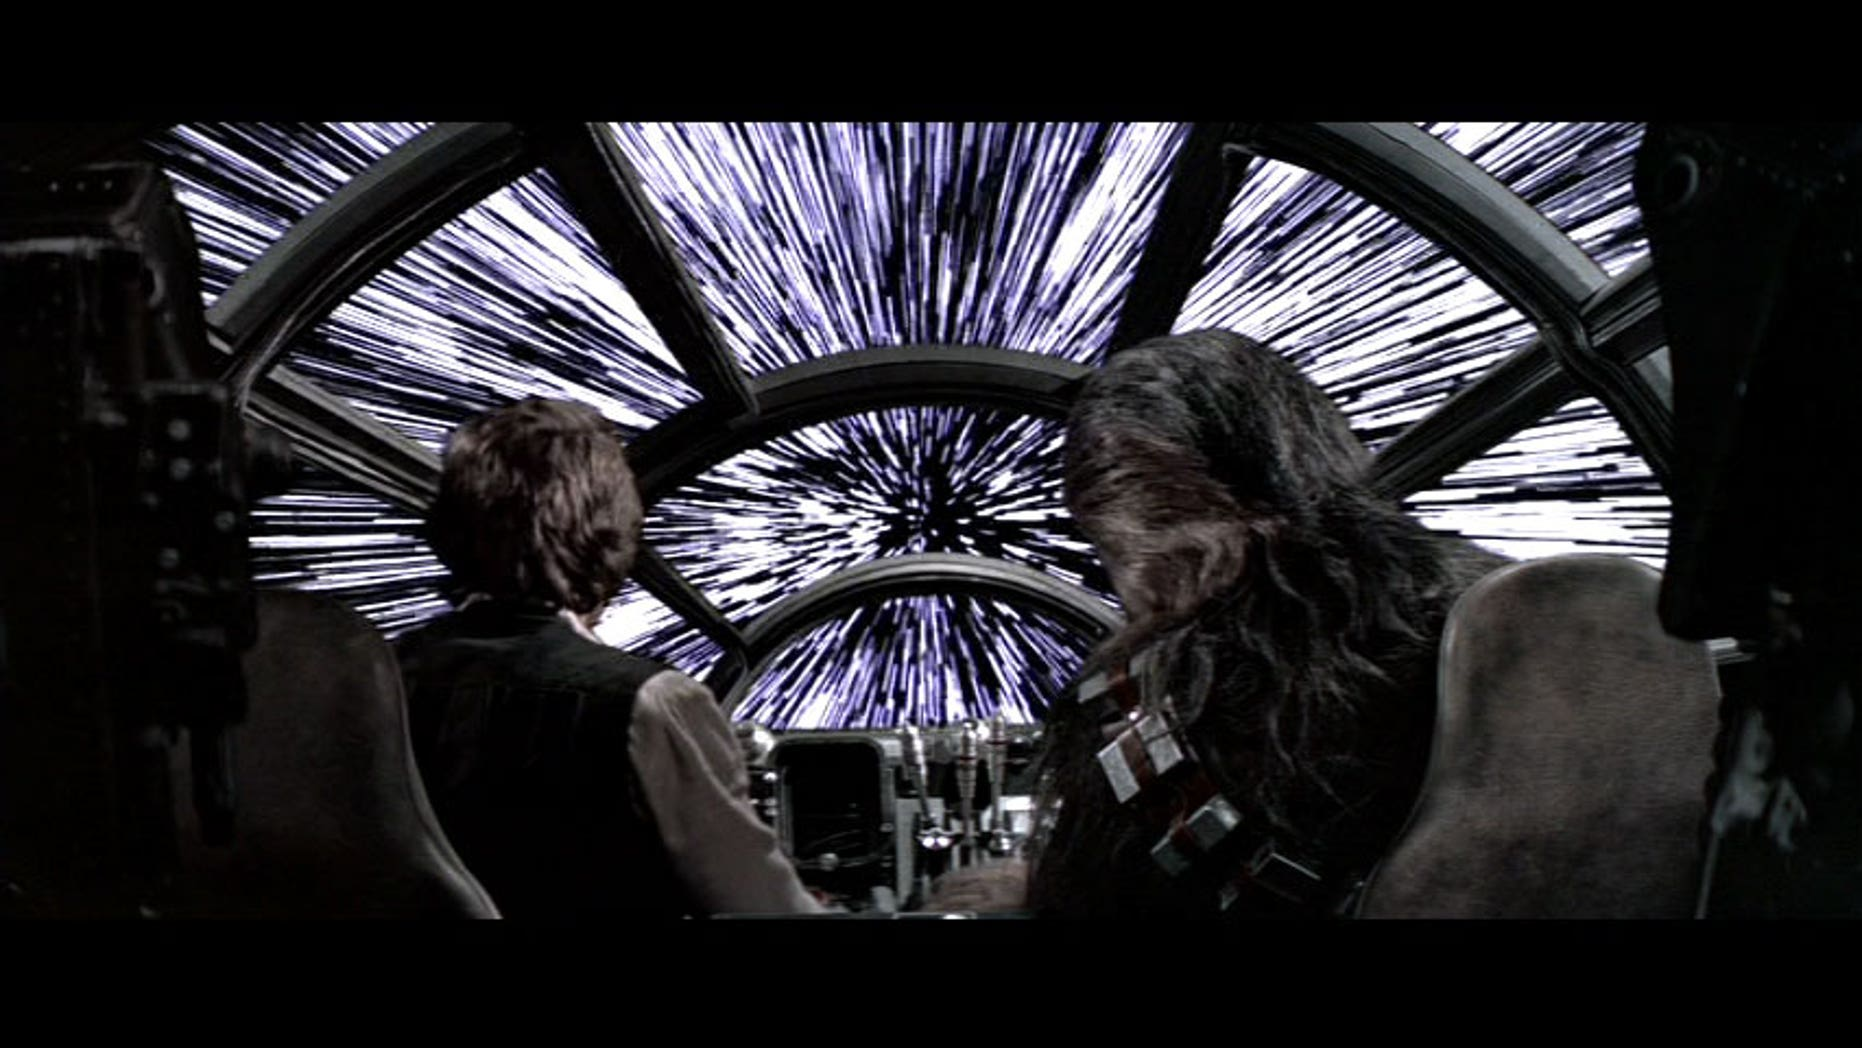 """Han Solo and Chewbacca punch the hyperdrive in """"Star Wars"""" to go light speed. Why don't we have a real one yet?"""